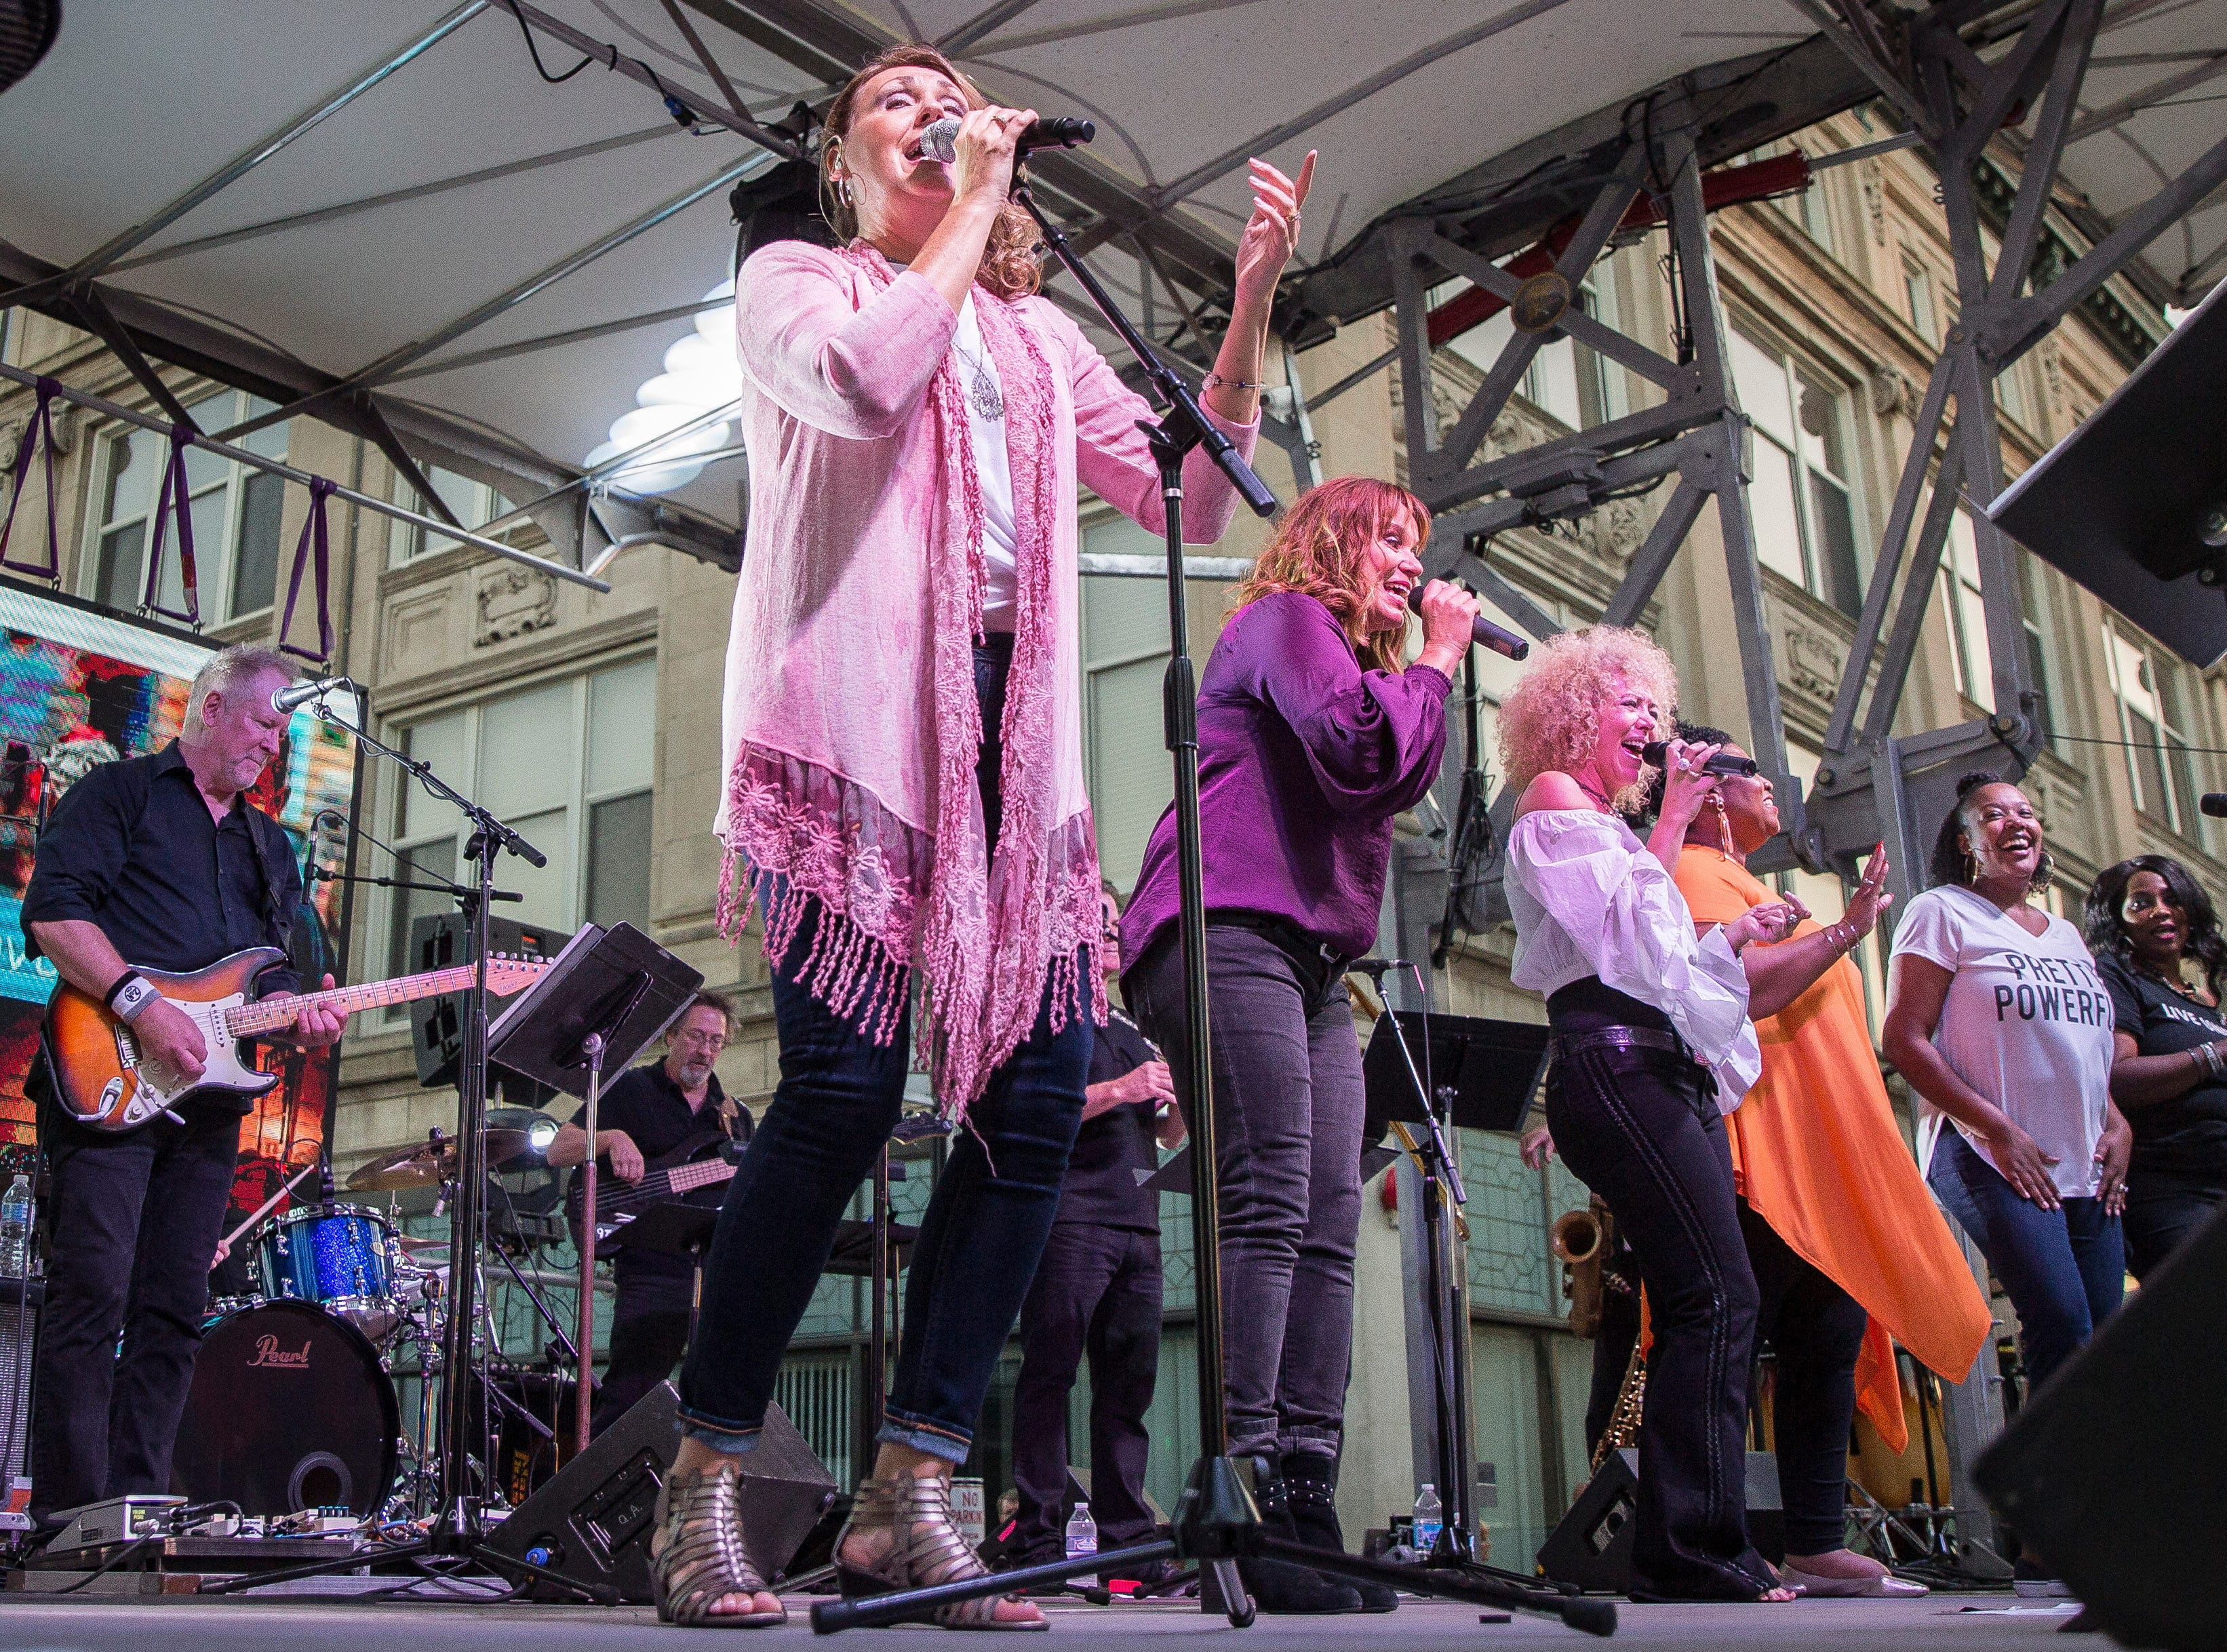 Hundreds gather downtown on Sept. 13 for the 2018 United Way Campaign kickoff with a free concert by Voices United featuring Cook and Belle, Jennie DeVoe, Keith O'Neal, Jennifer Stanley and Carl Storie. The United Way's yearly fundraising goal is to bring in over $1,400,000 this year for their causes.